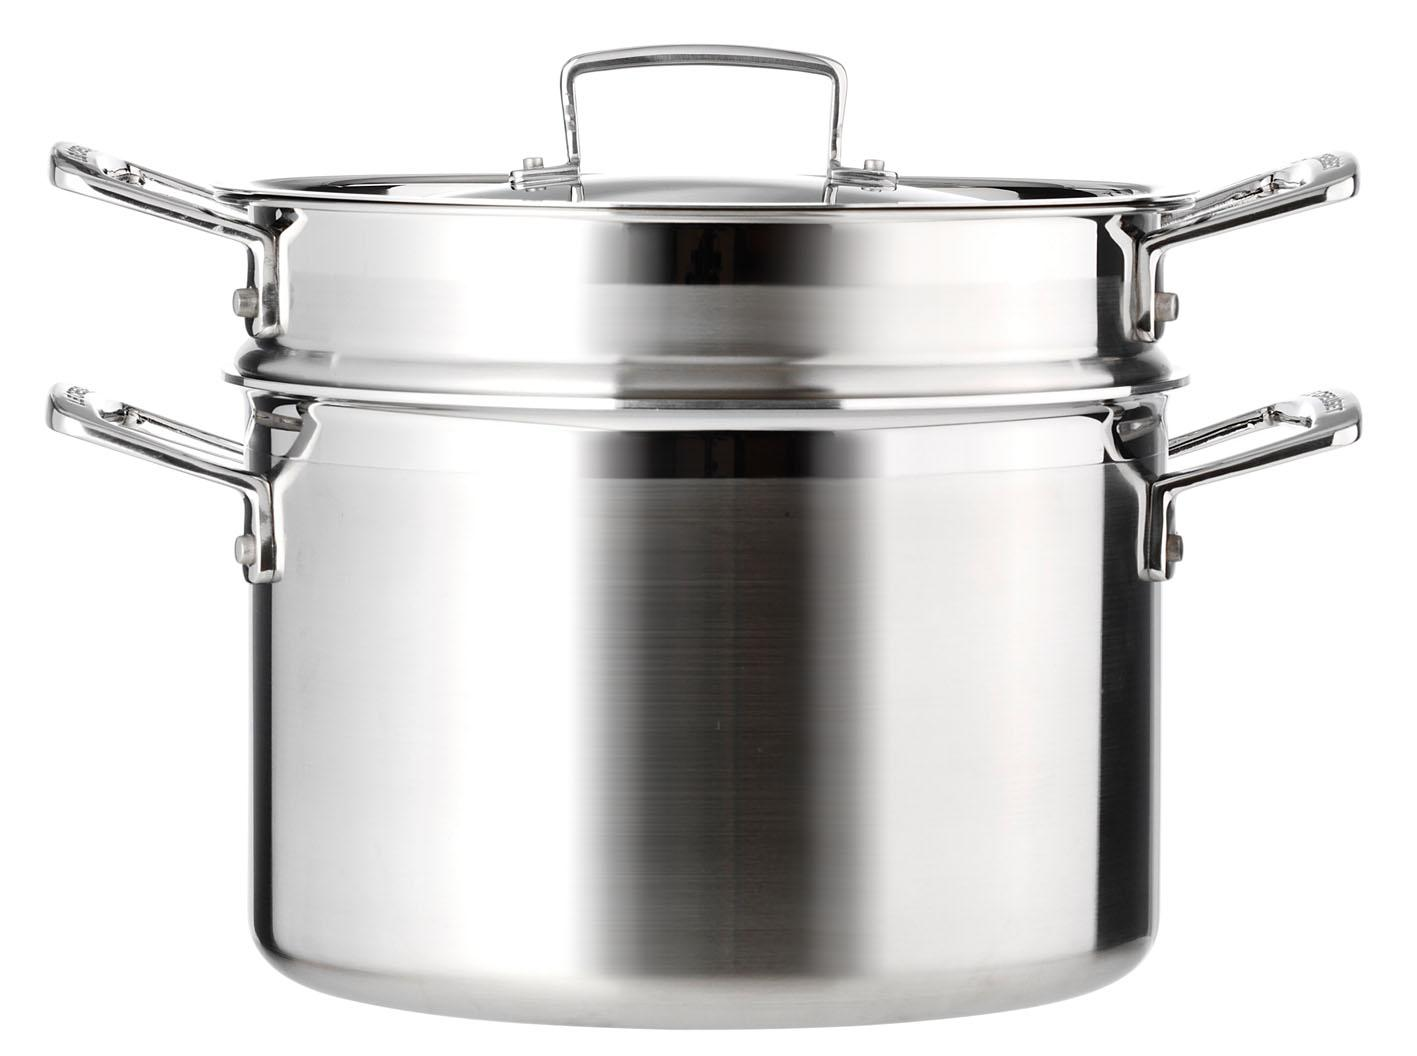 le creuset 3 ply stainless steel pasta pot 20 cm kitchen home. Black Bedroom Furniture Sets. Home Design Ideas